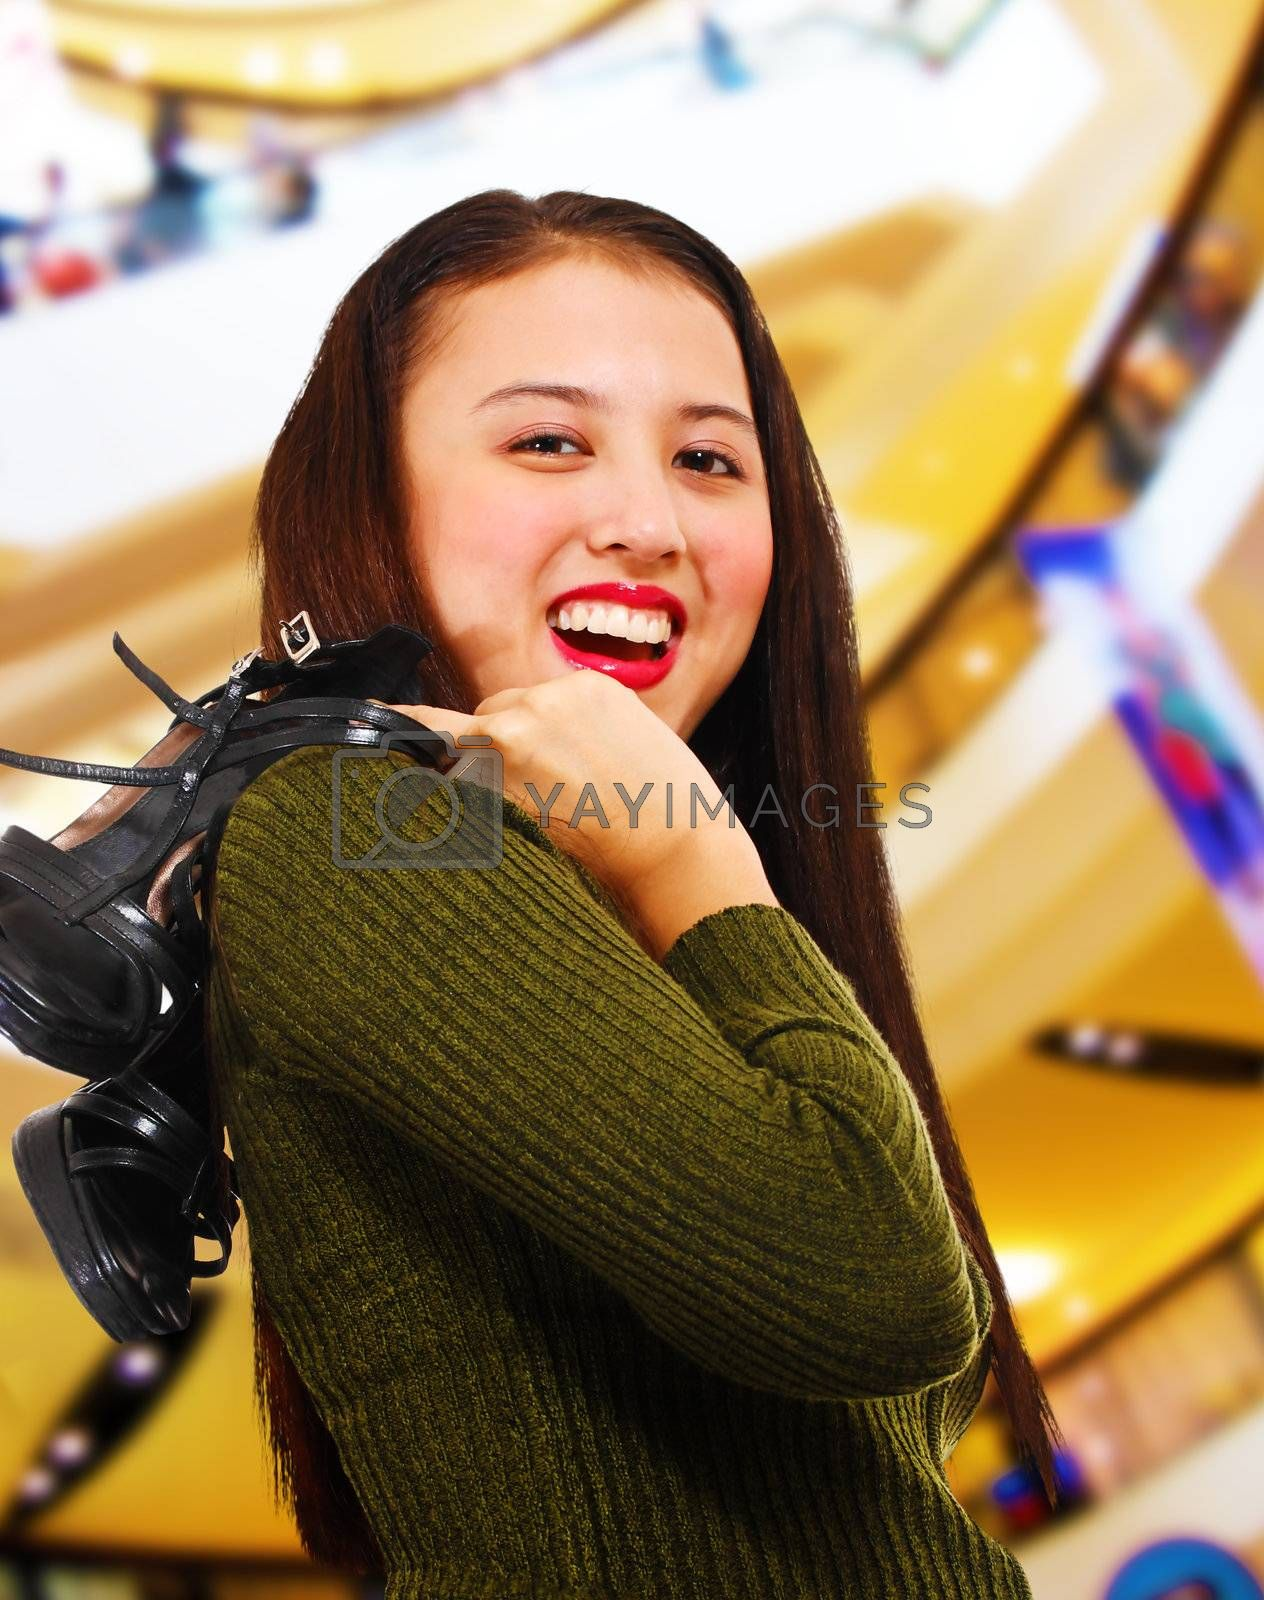 Smiling teenager in a shopping center holding her shoes over her shoulder